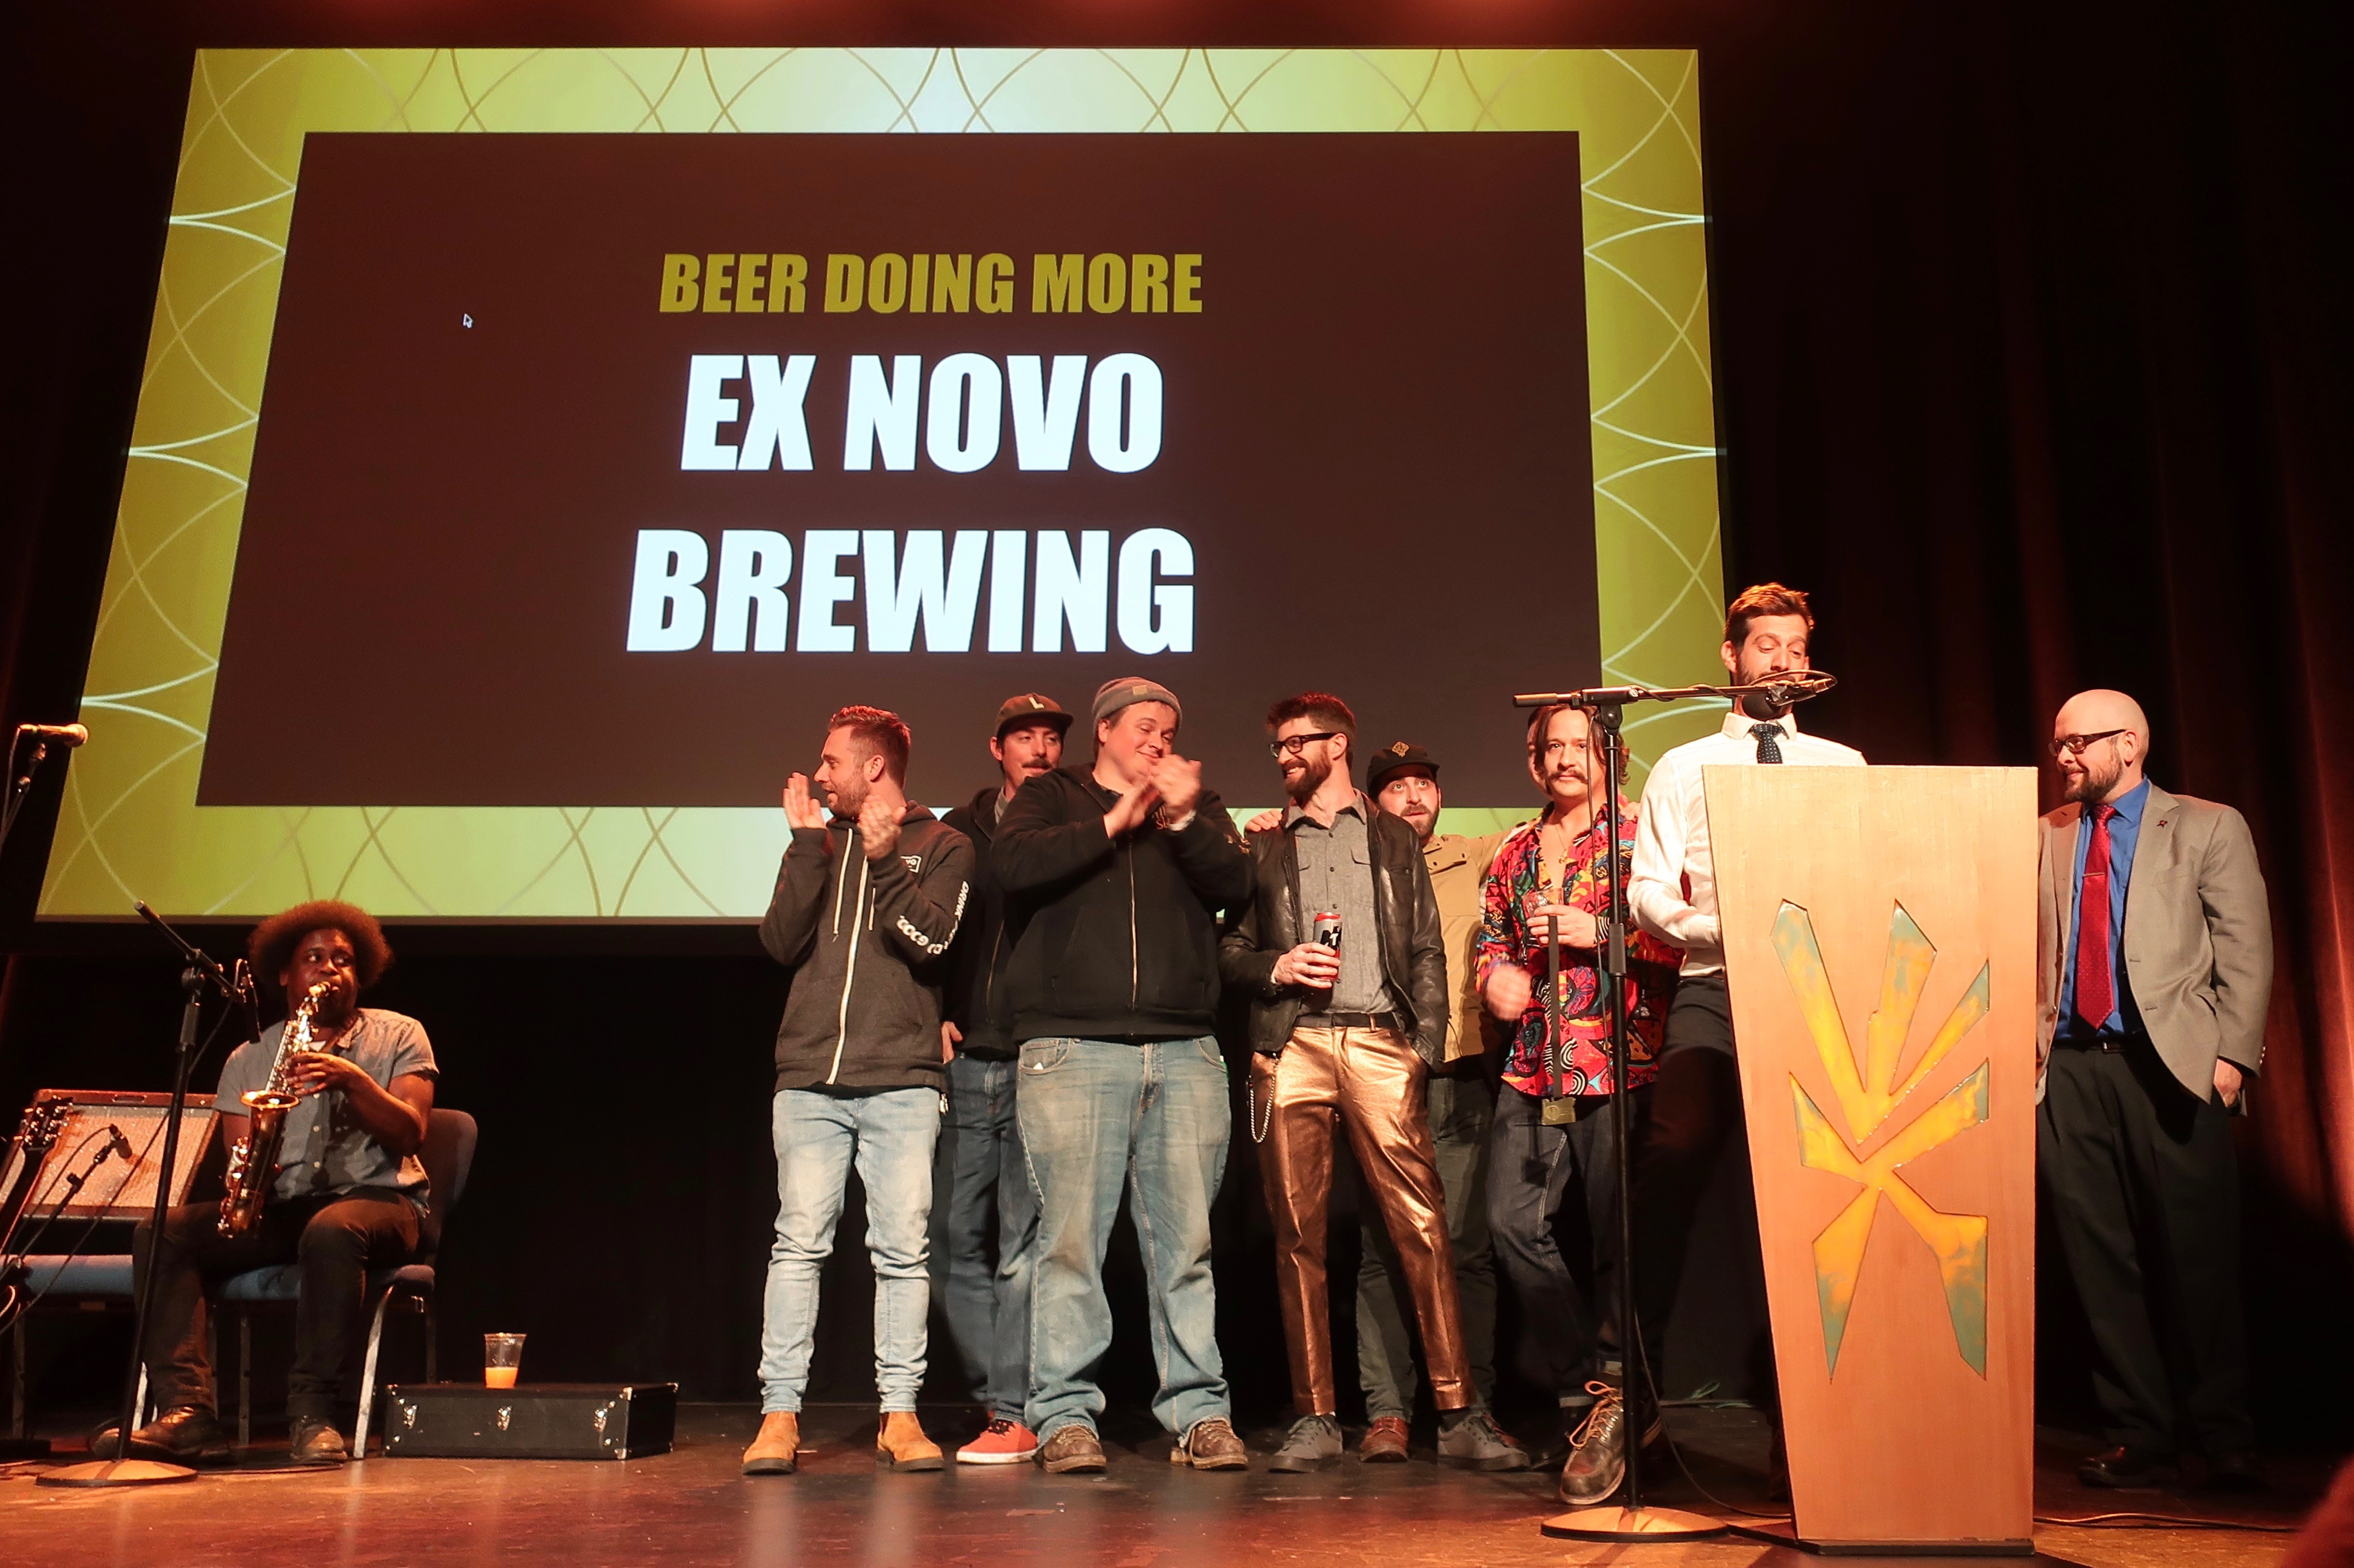 Ex Novo Brewing won the Beer Doing More award at the 2019 Oregon Beer Awards.